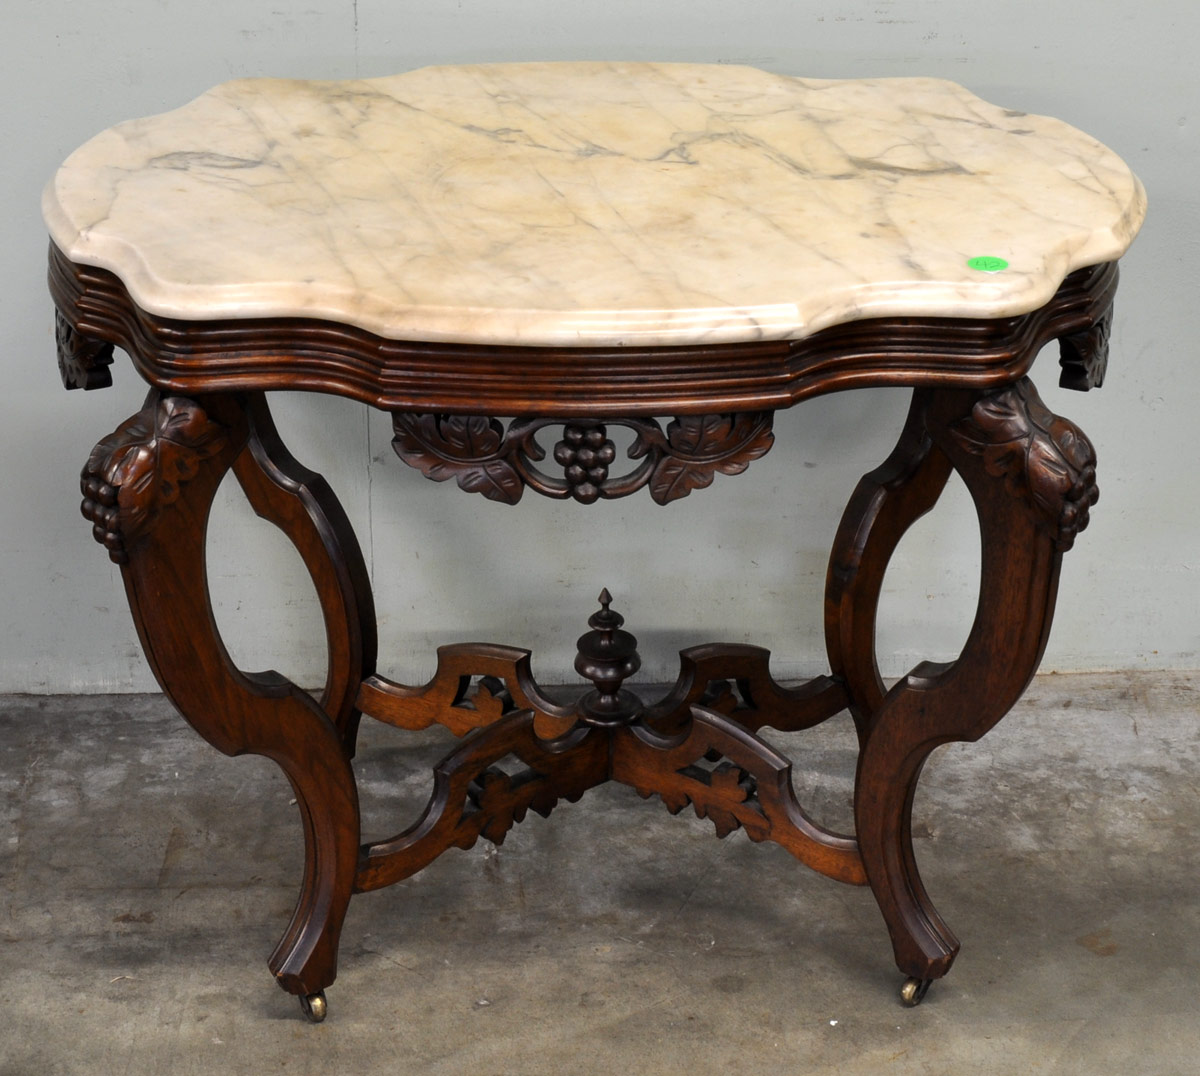 Auction company 751 walnut victorian marble top parlor table ca 1870 - 42 1 Lovely Carved Victorian Parlor Table With Marble Top